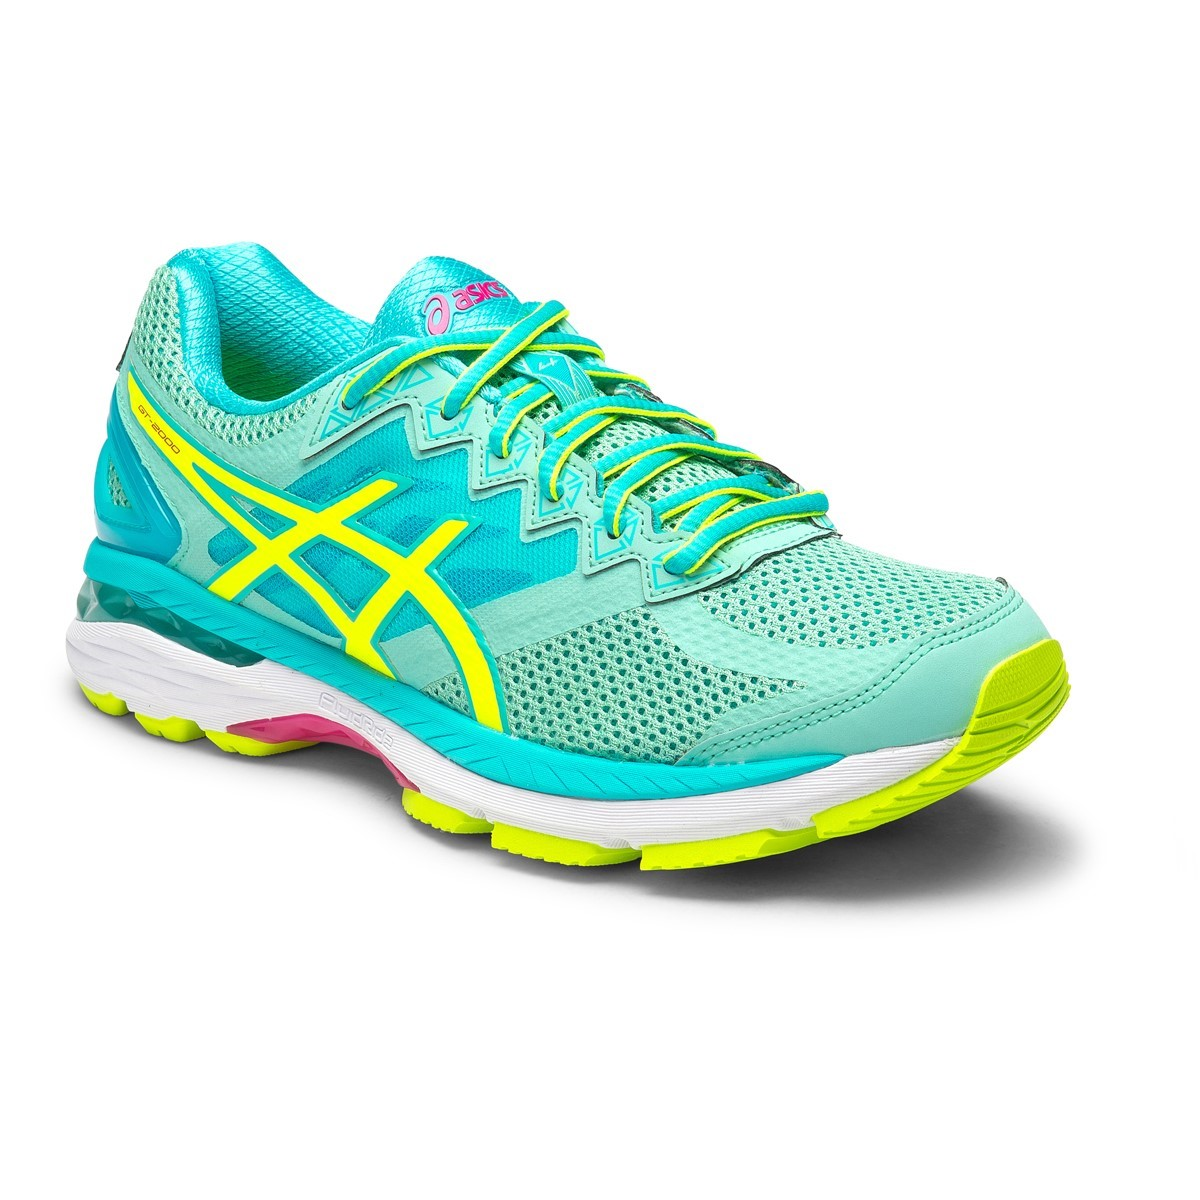 asics gt 2000 4 b womens running shoes aruba blue safety yellow aquarium online sportitude. Black Bedroom Furniture Sets. Home Design Ideas